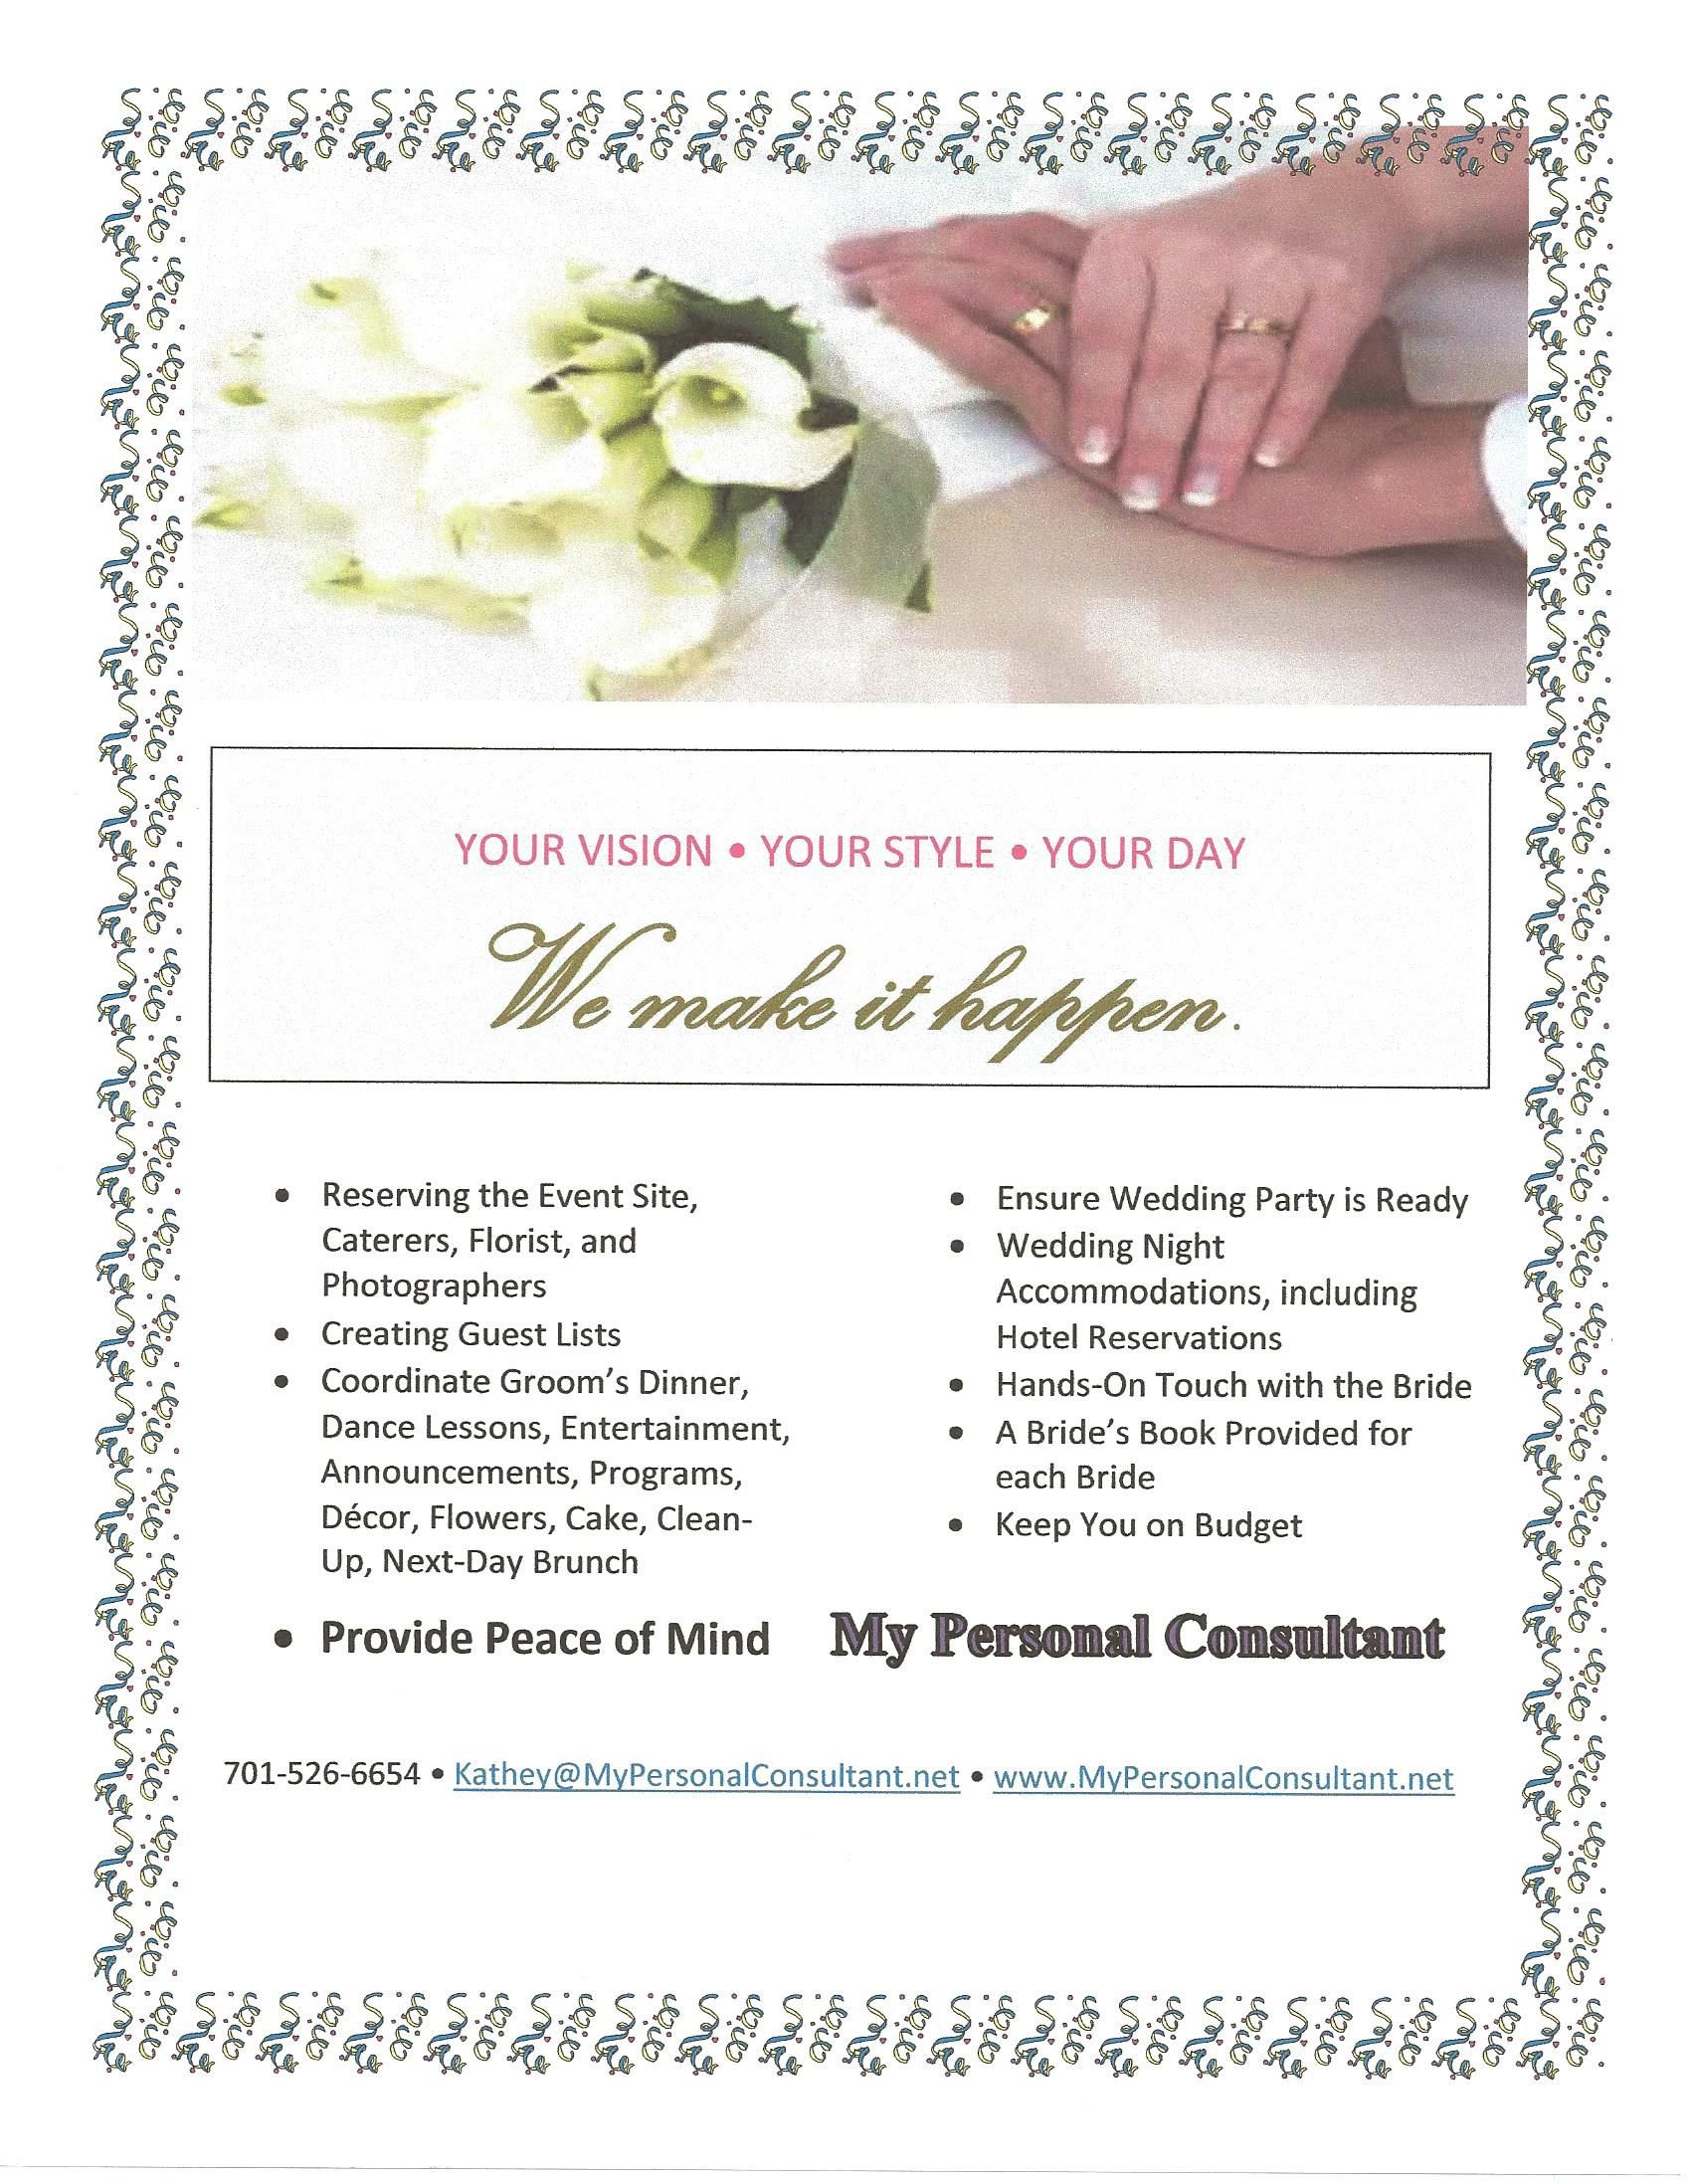 Let us help you have the day of your dreams